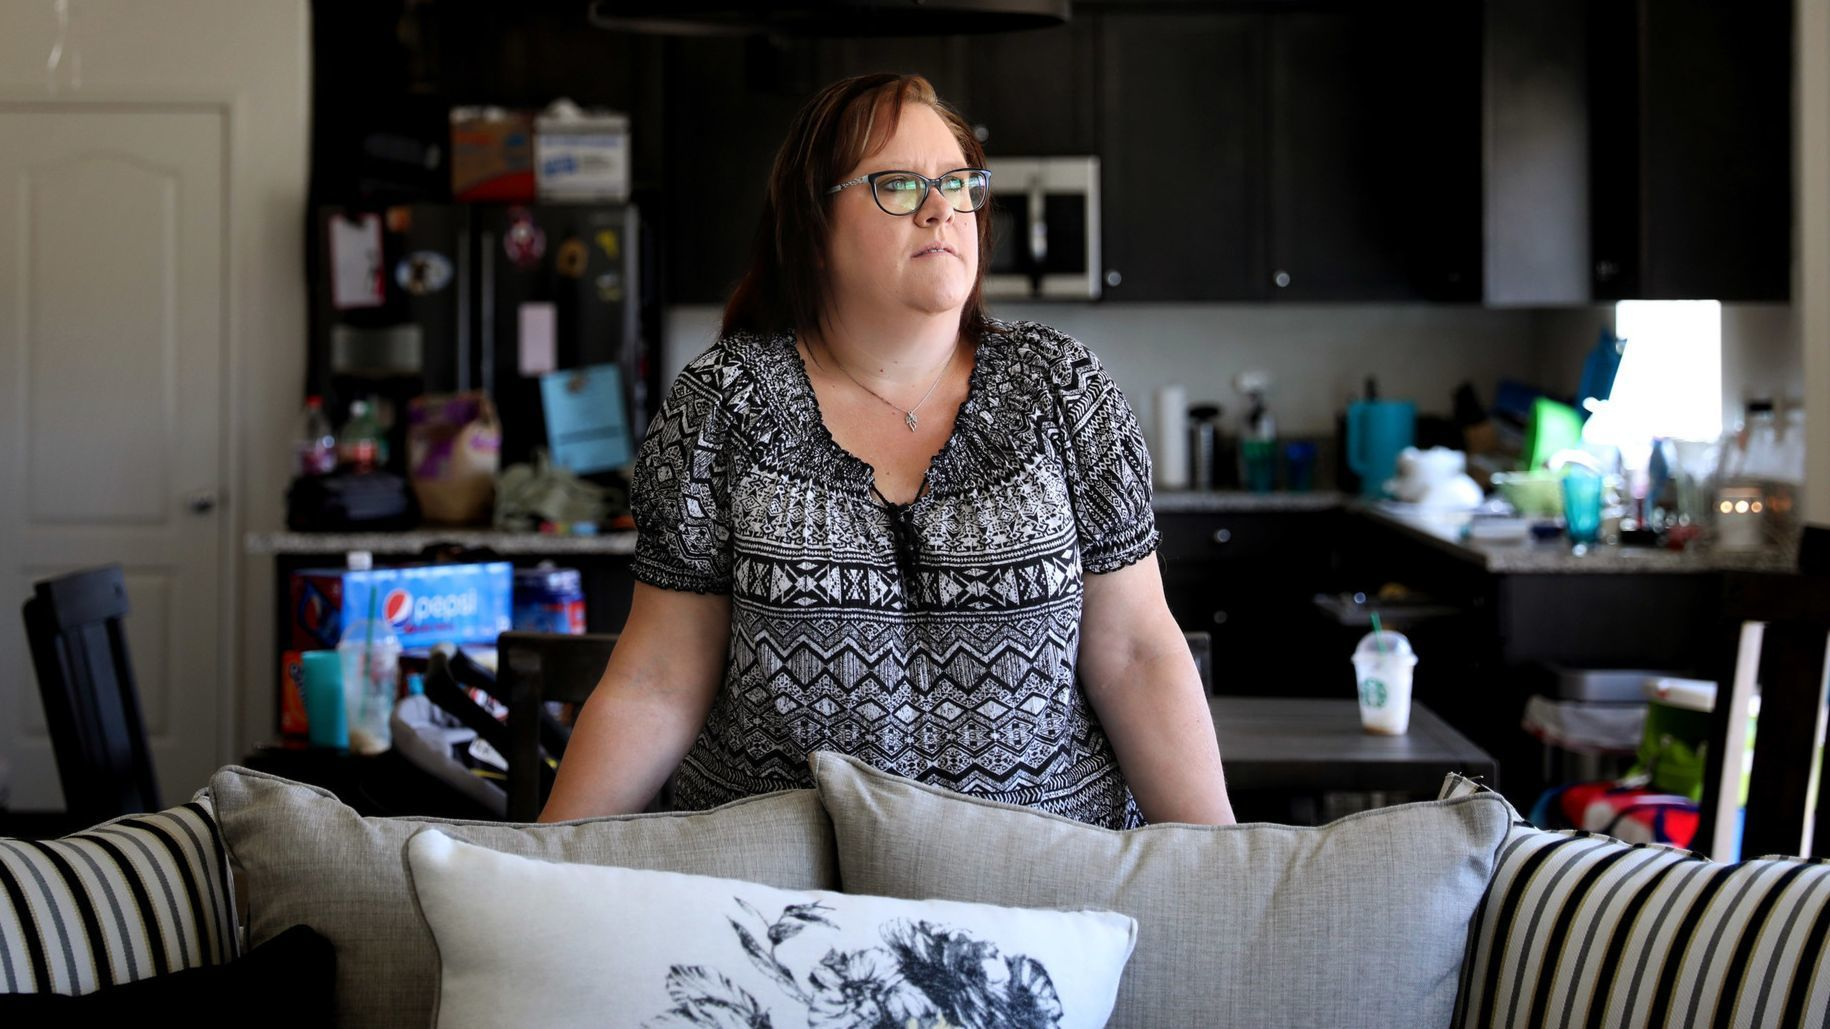 VICTORVILLE-CA-SEPTEMBER 2, 2018: Joyce McCord is photographed in her new home in Victorville on Sun